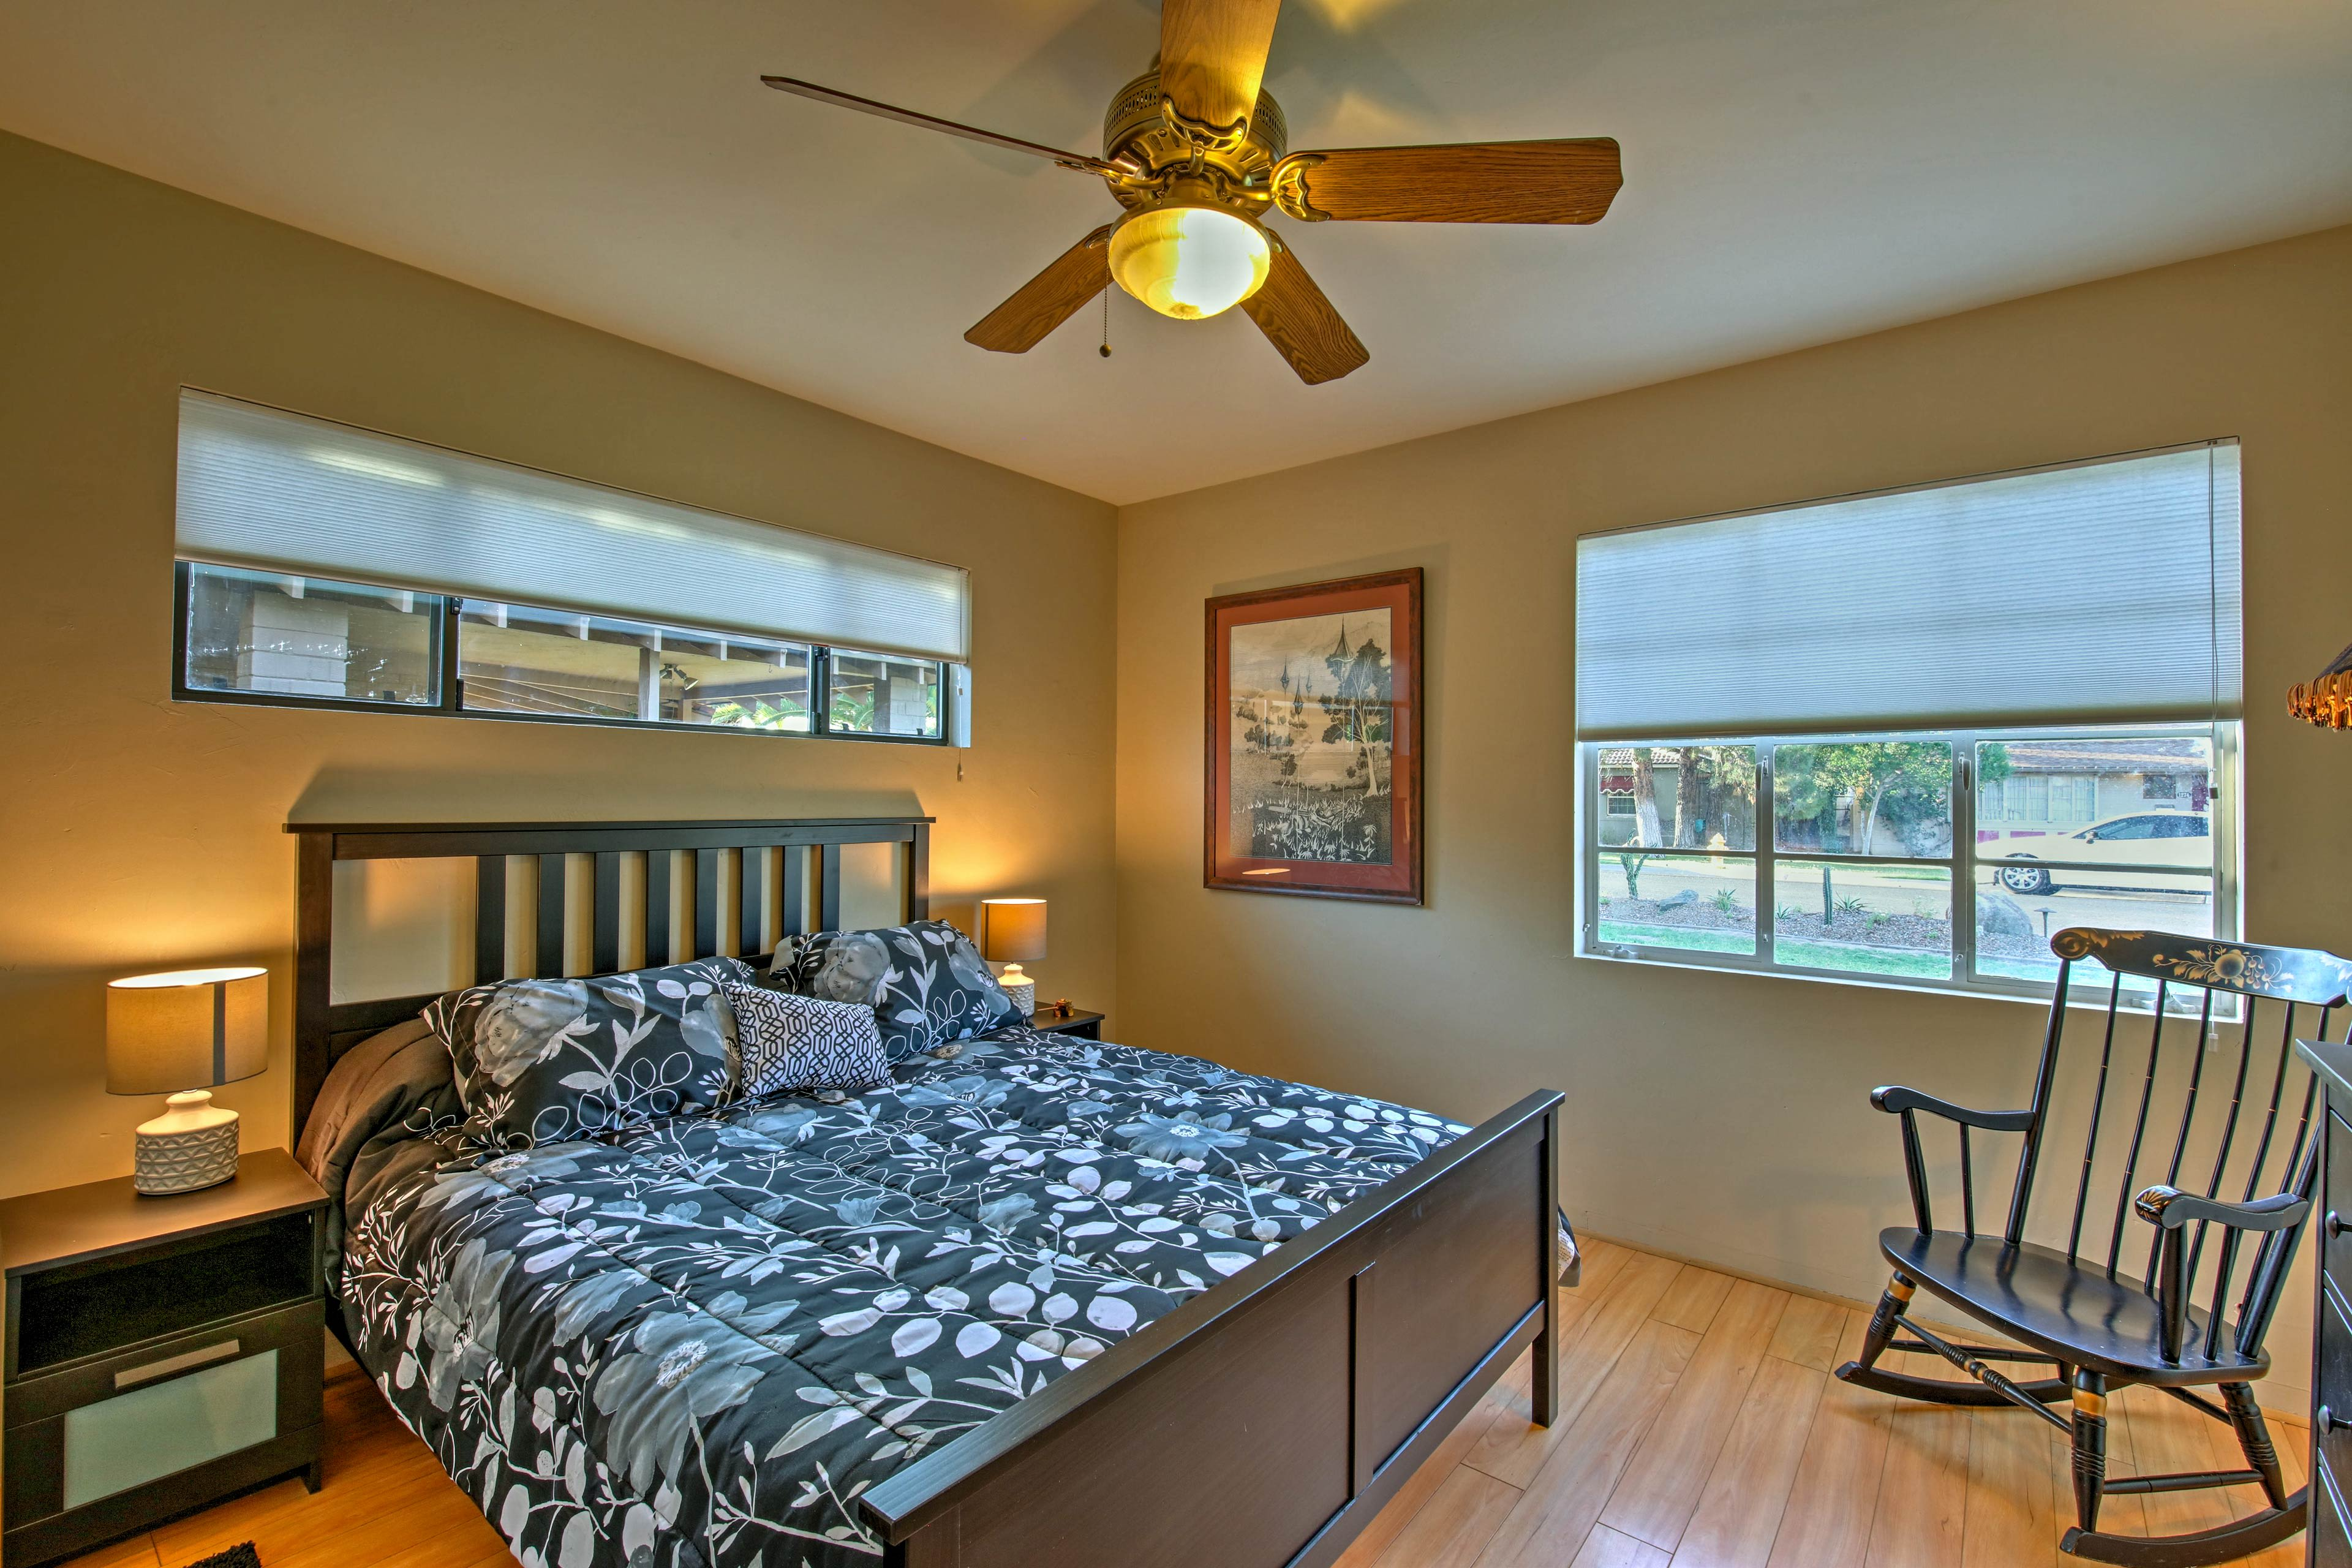 The final bedroom boasts a queen-sized bed.